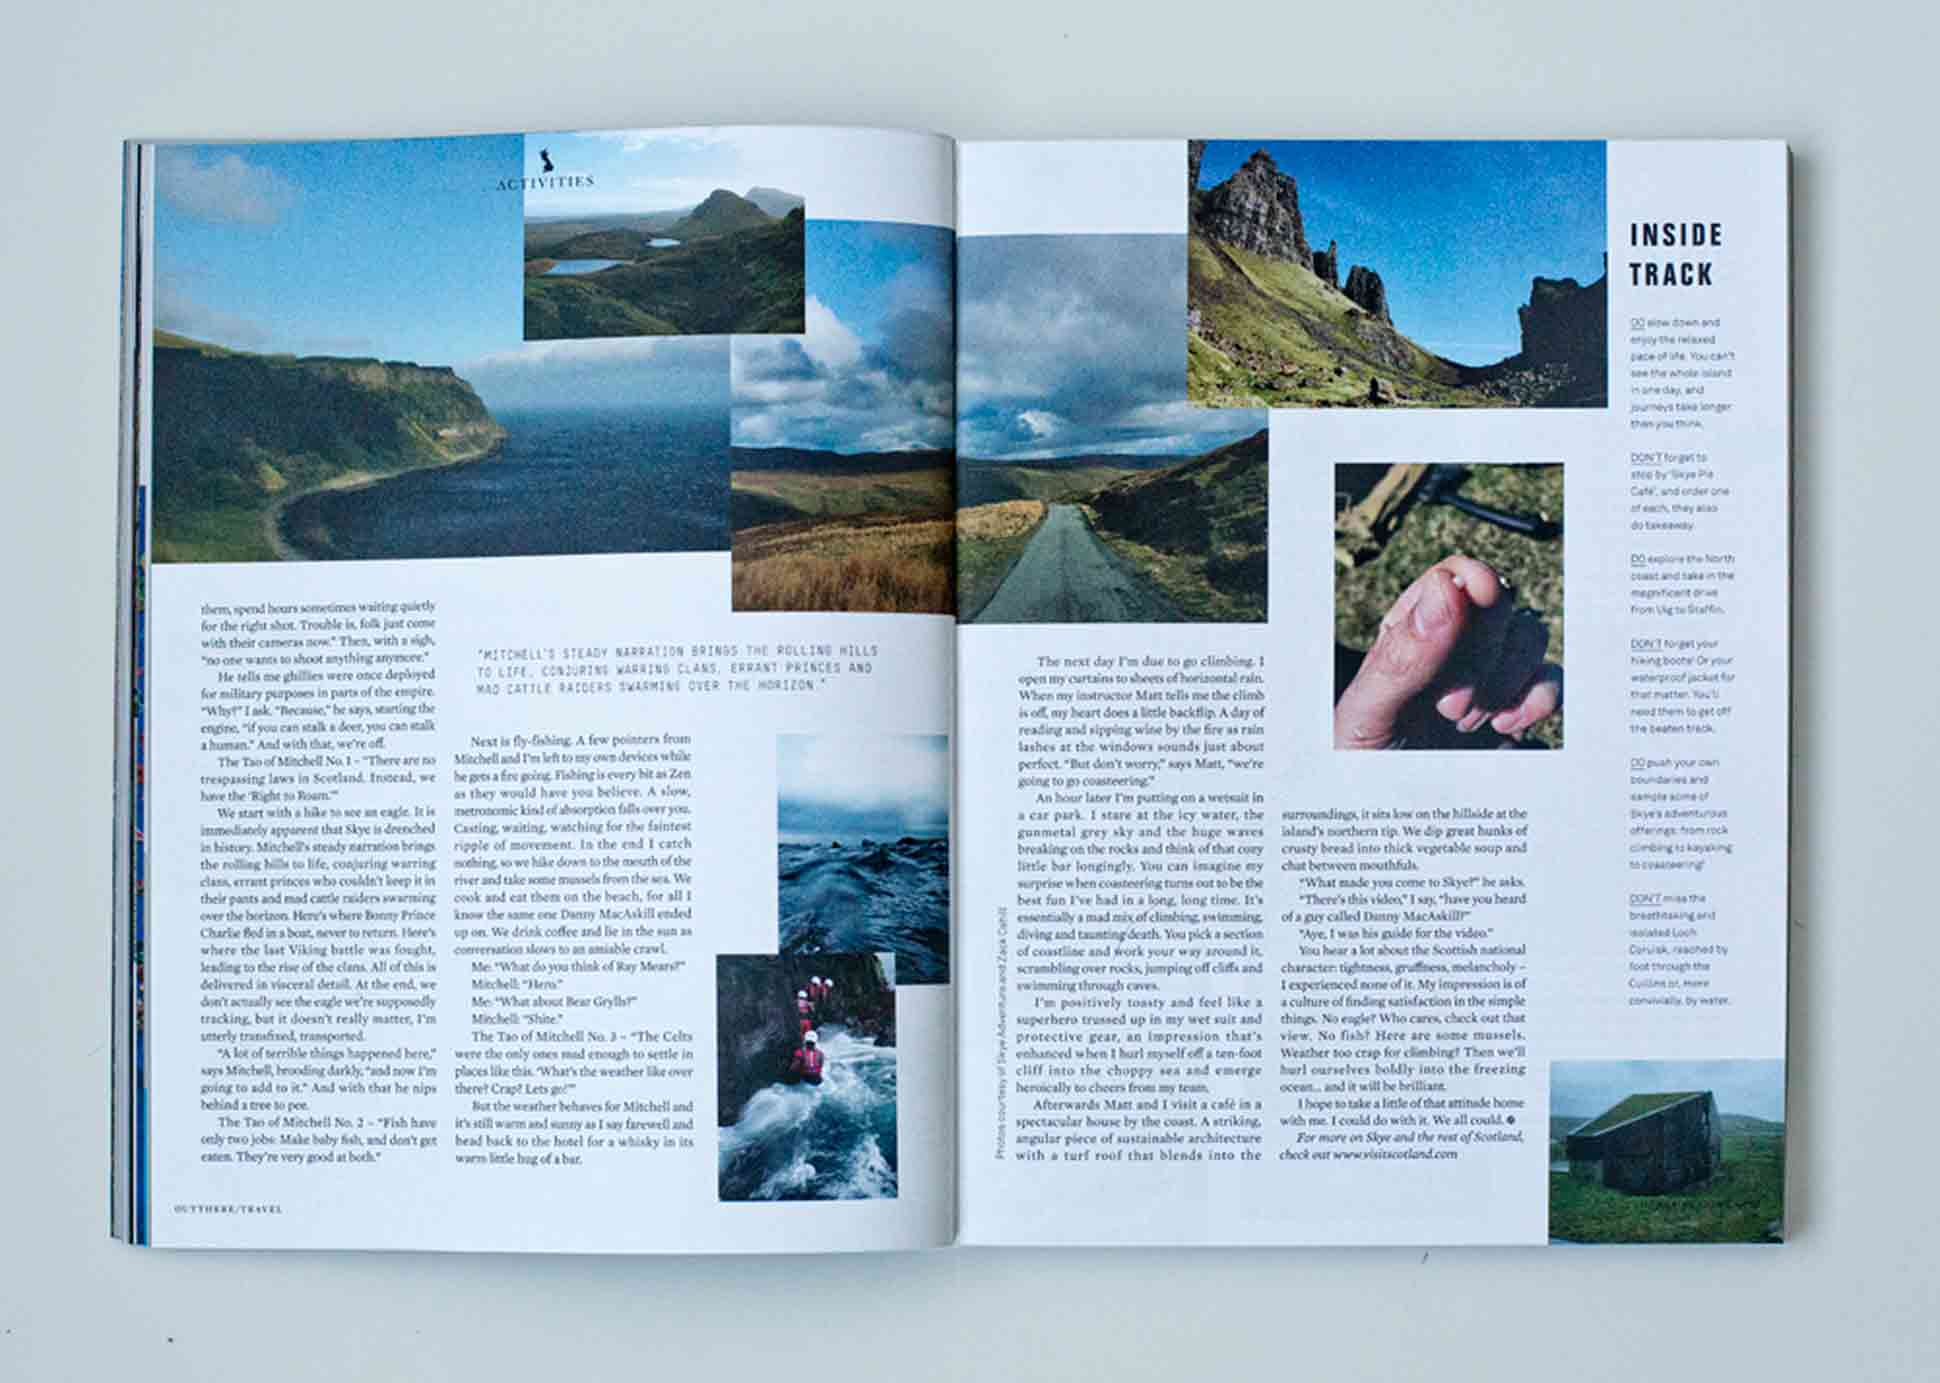 OutThere/Travel Great British Issue preview - Skye and Kinloch Lodge